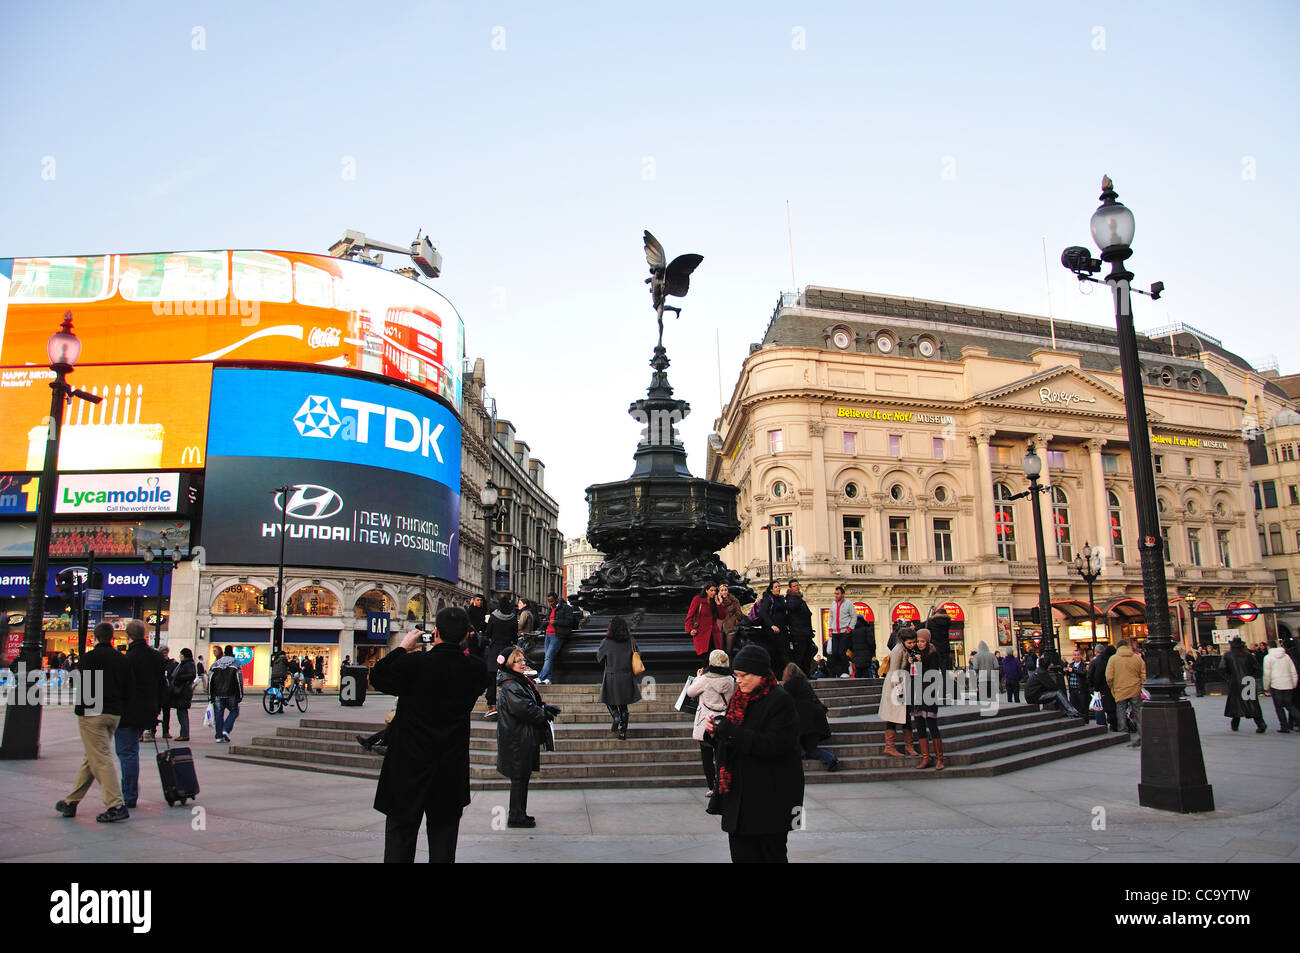 Shaftesbury Memorial Fountain, Piccadilly Circus, West End, City of Westminster, London, England, United Kingdom - Stock Image